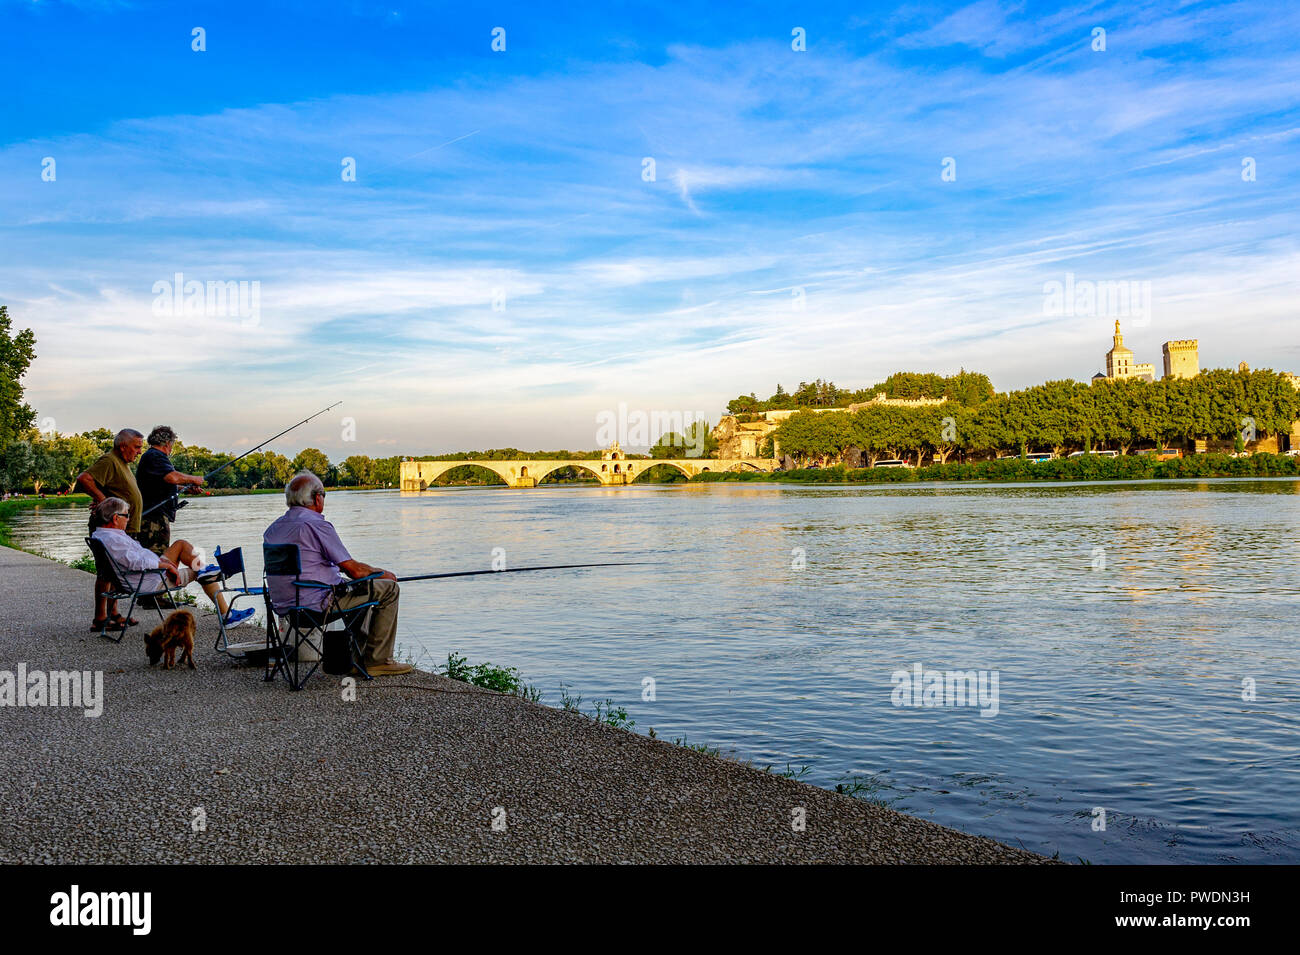 France. Vaucluse (84). Avignon. Fishermen on the banks of the Rhone, in background the pont Saint-Bénézet, commonly called Pont d'Avigon. - Stock Image